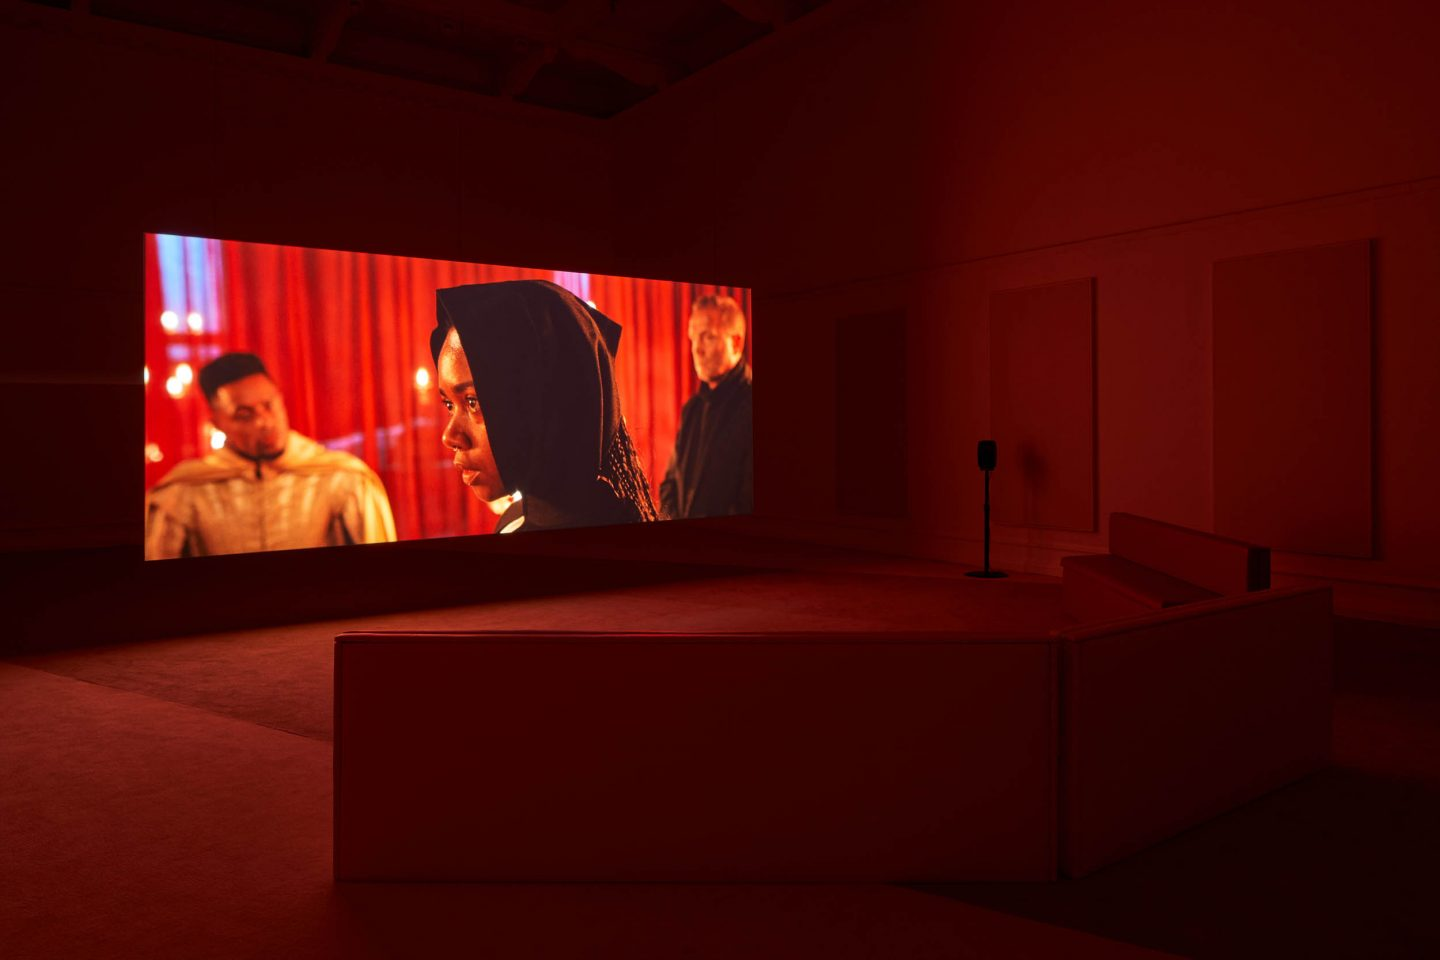 Sophie Cundale, The Near Room, 2020 (film still). Installation view at the South London Gallery. Photo: Andy Stagg. Courtesy the artist and FVU